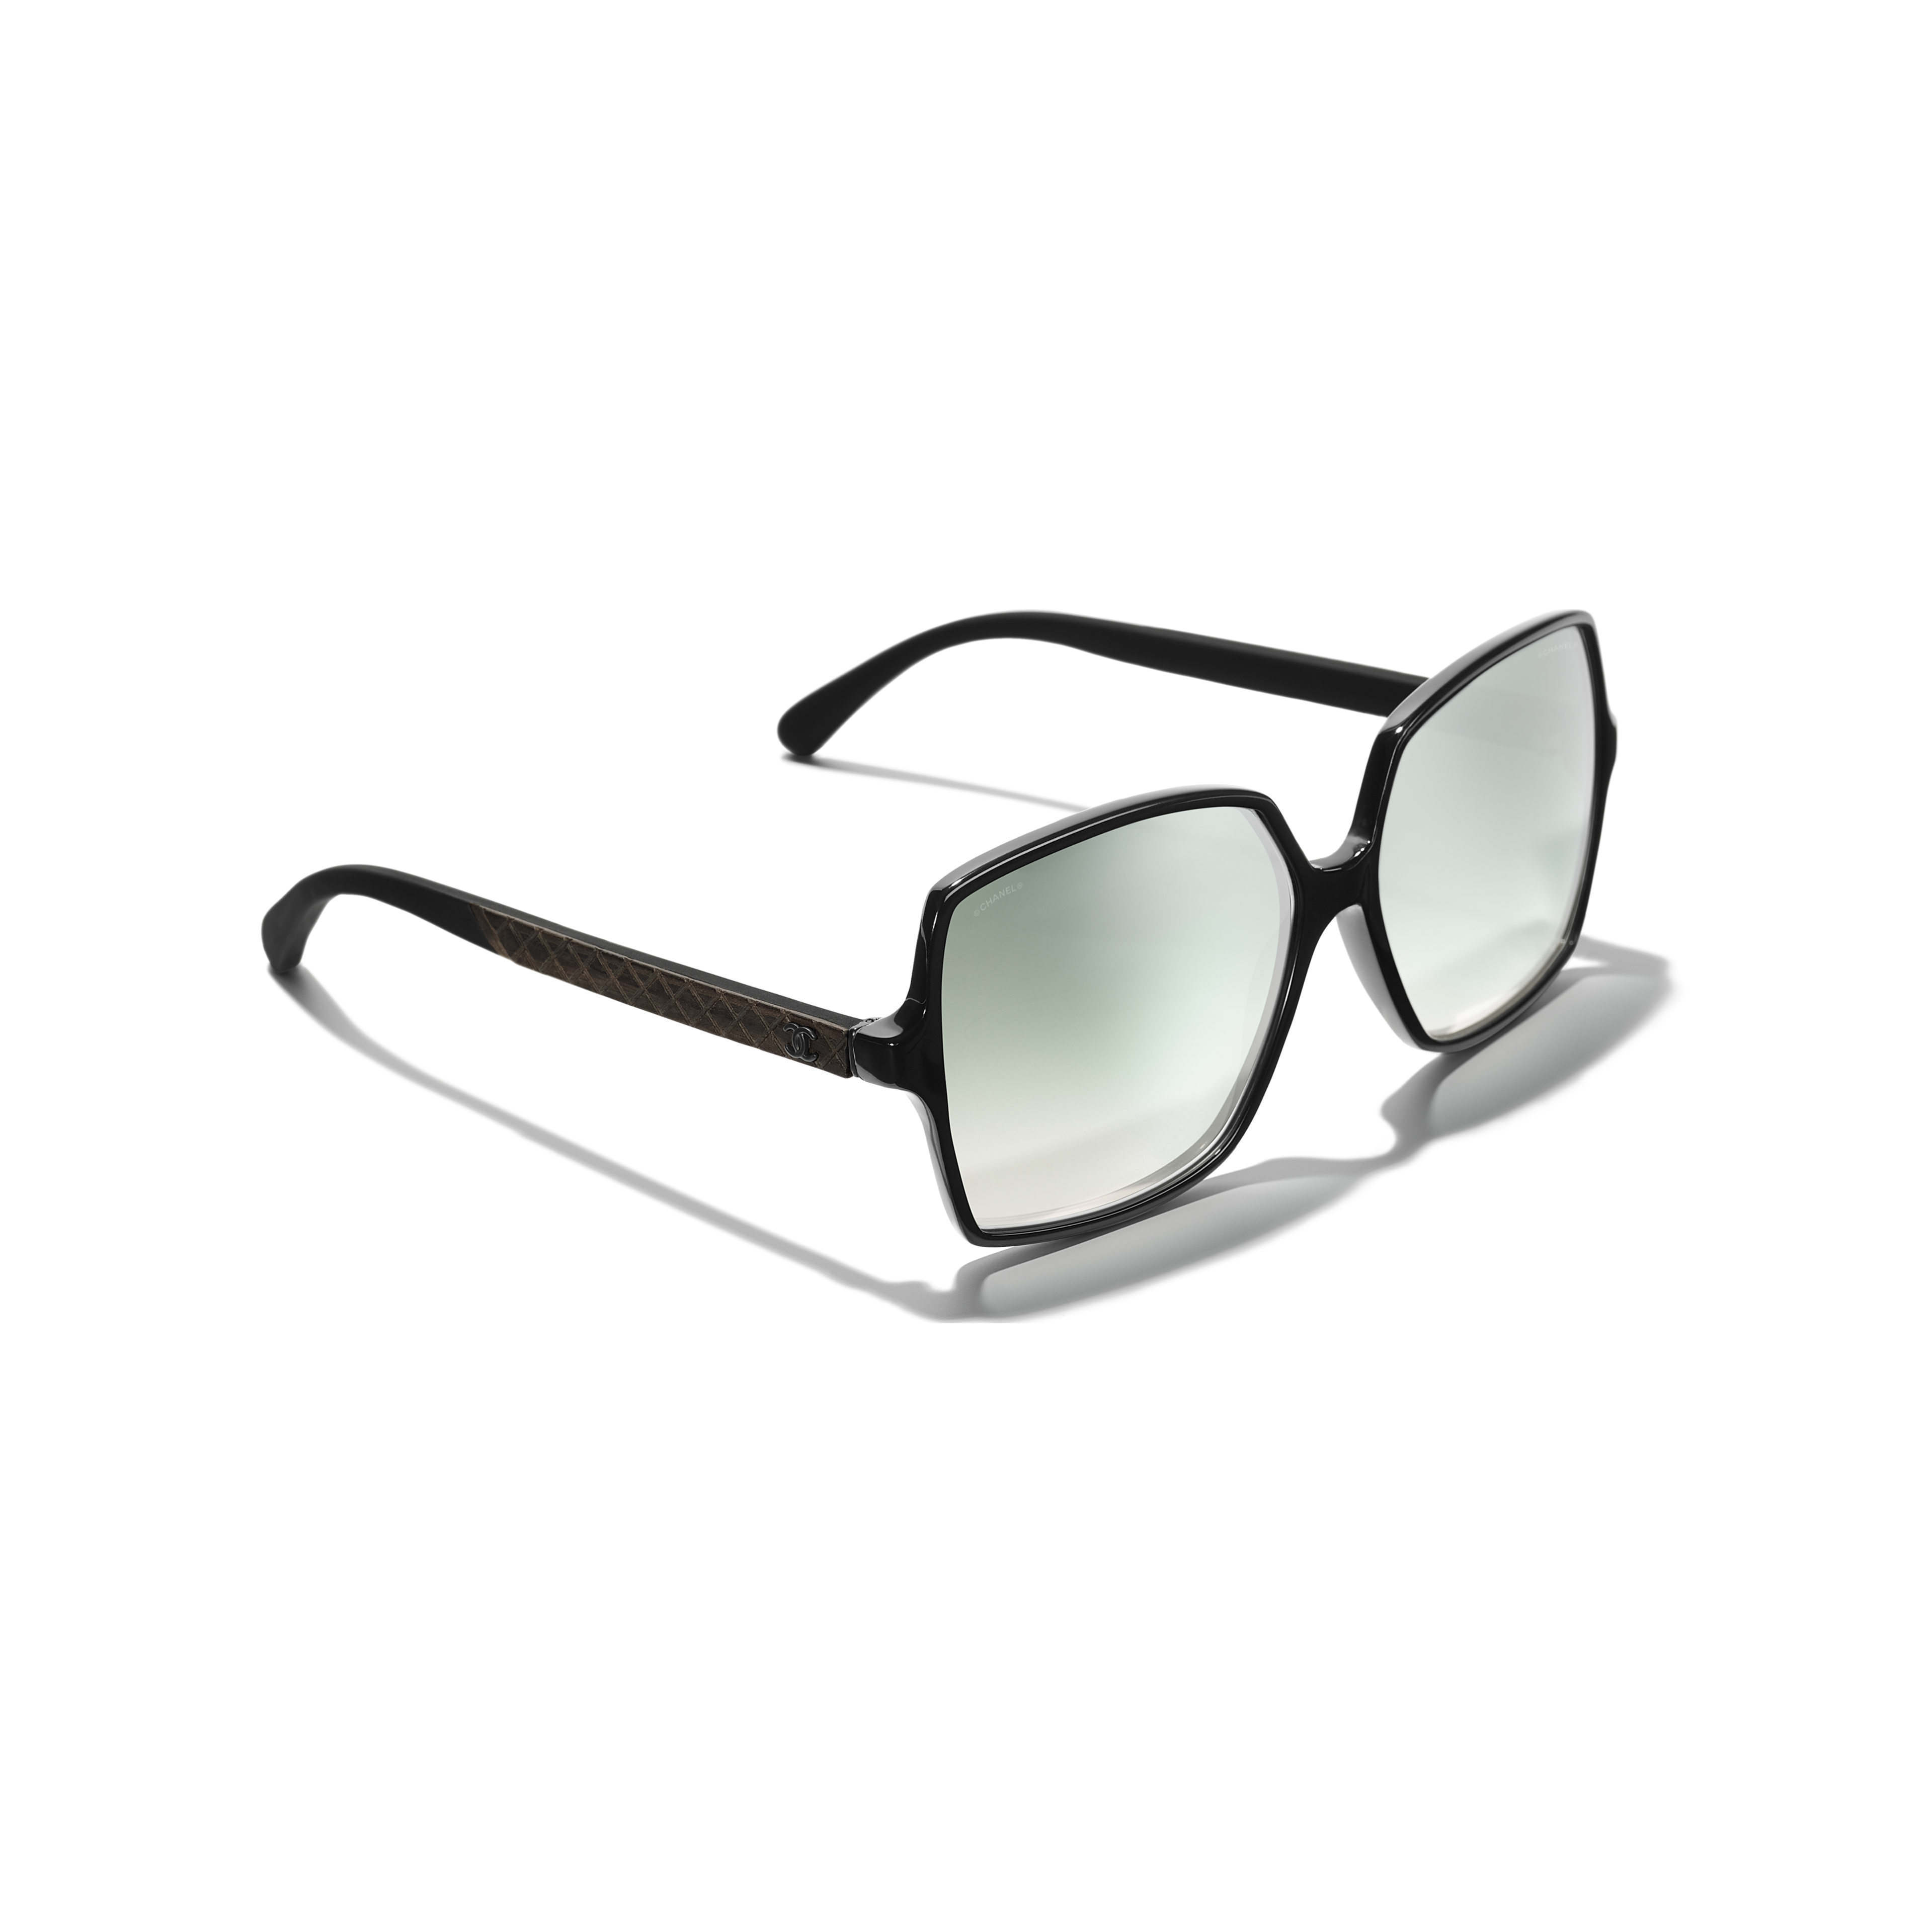 Square Sunglasses - Black - Acetate, Wood & Rubber - Extra view - see full sized version